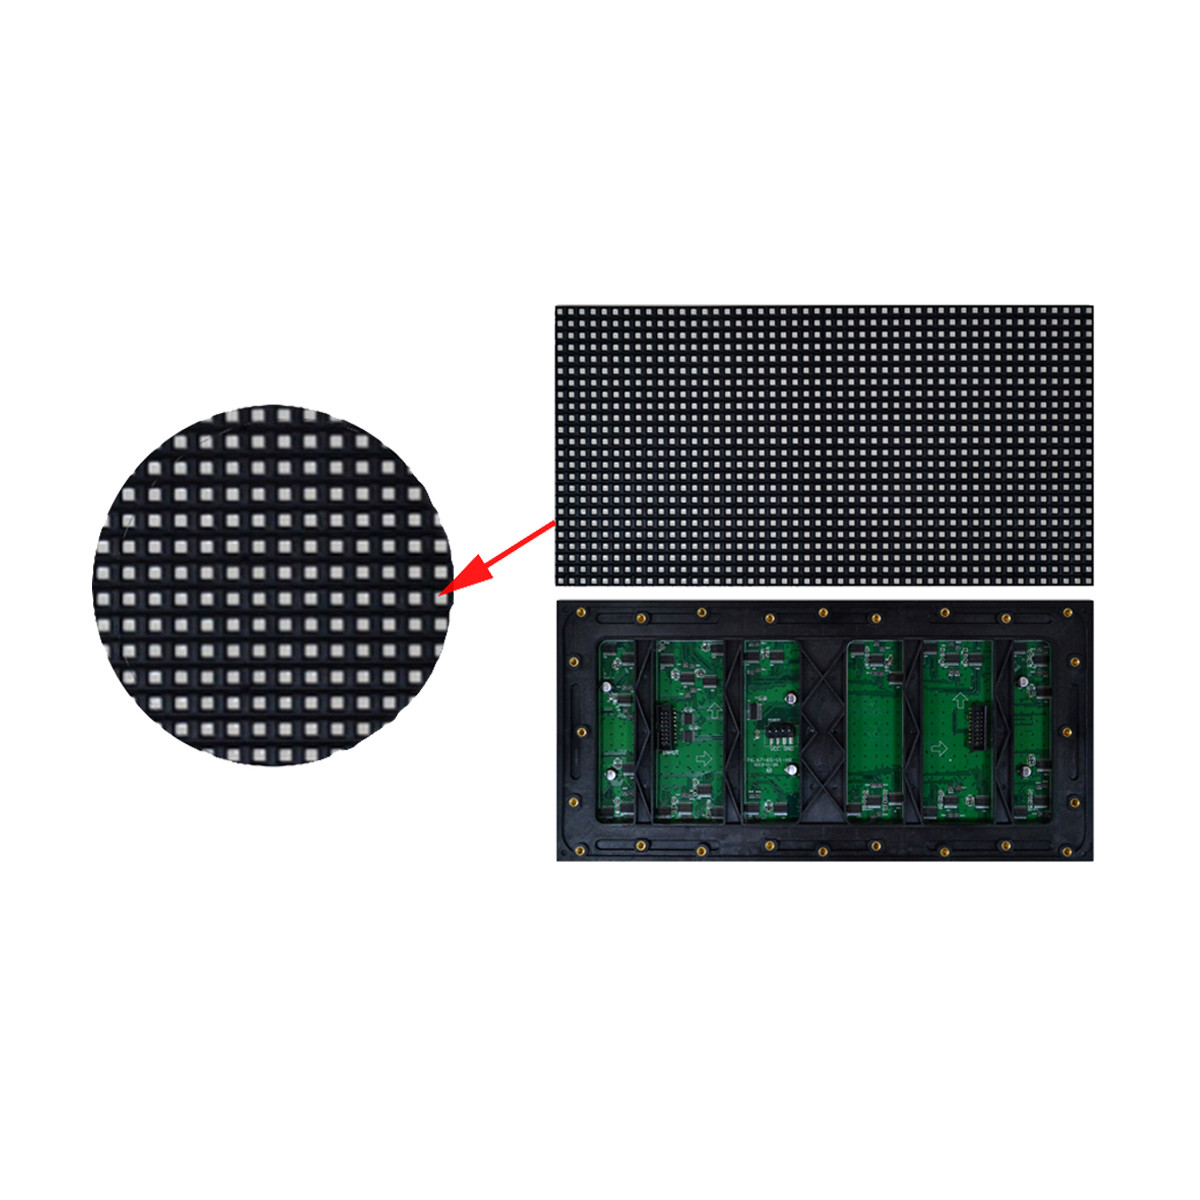 P6.6L Outdoor SMD LED Display Module 320*160mm SMD3535 5000cd/㎡ Brightness 1920Hz High Refresh